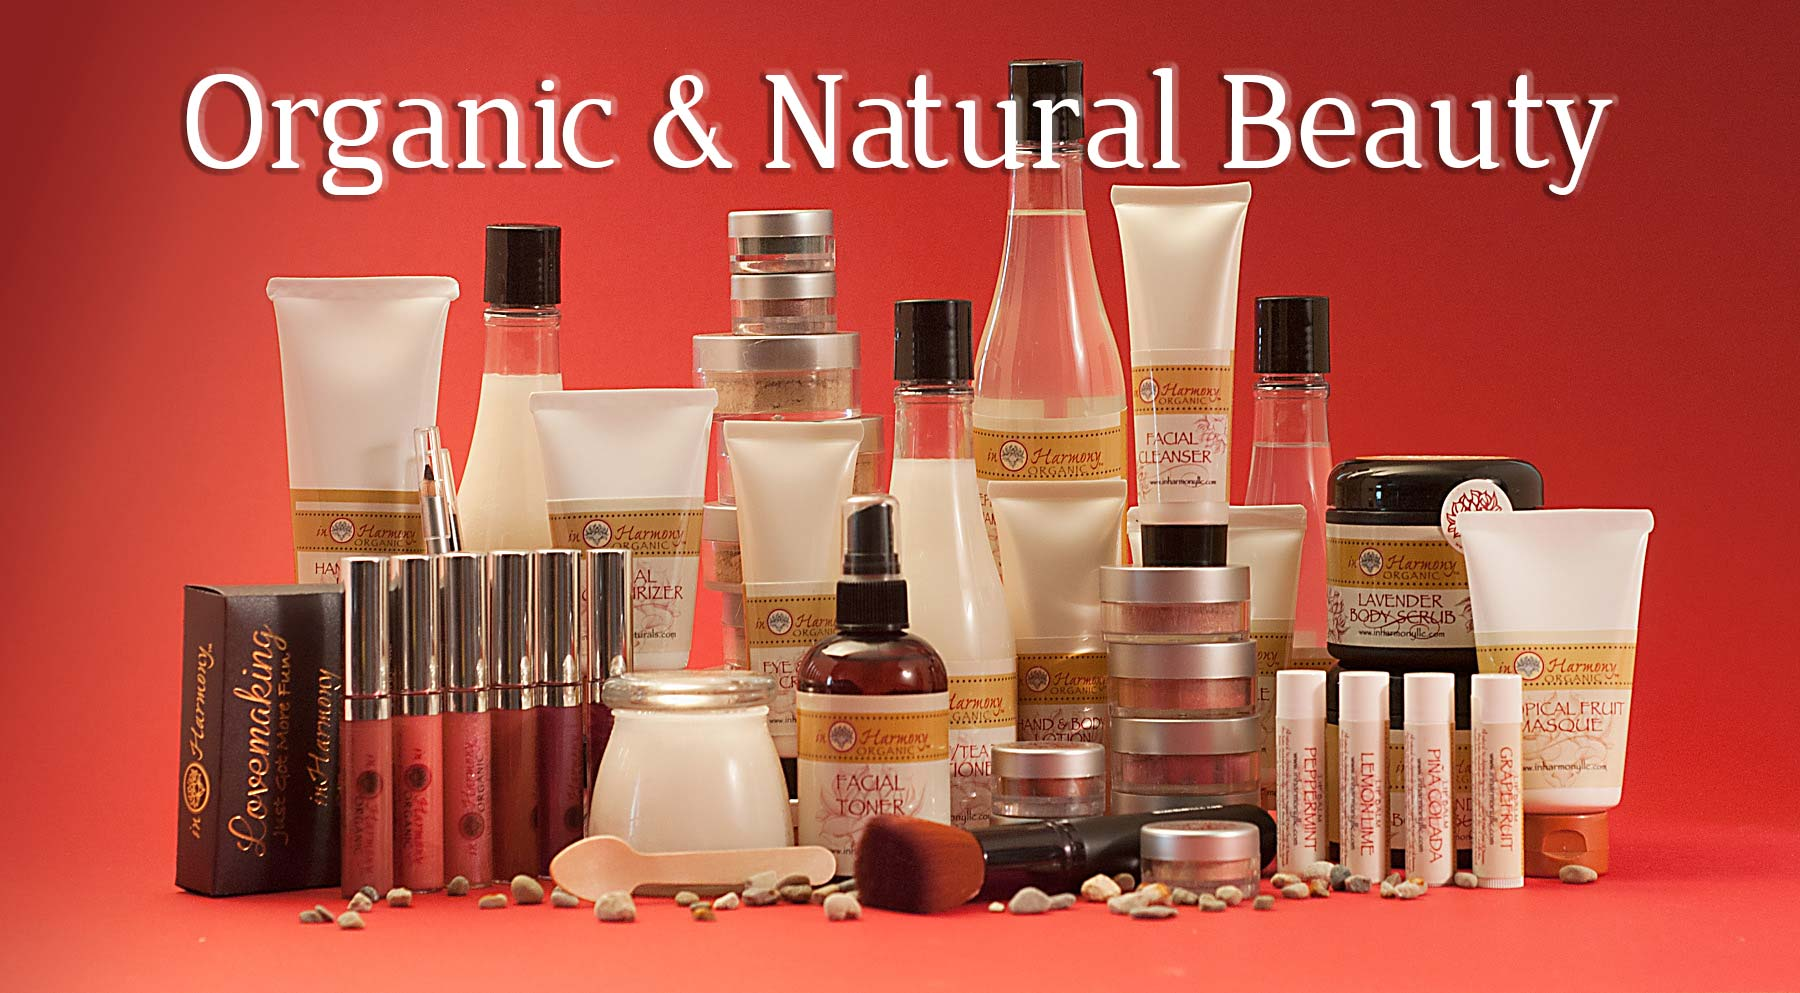 in Harmony naturals product line